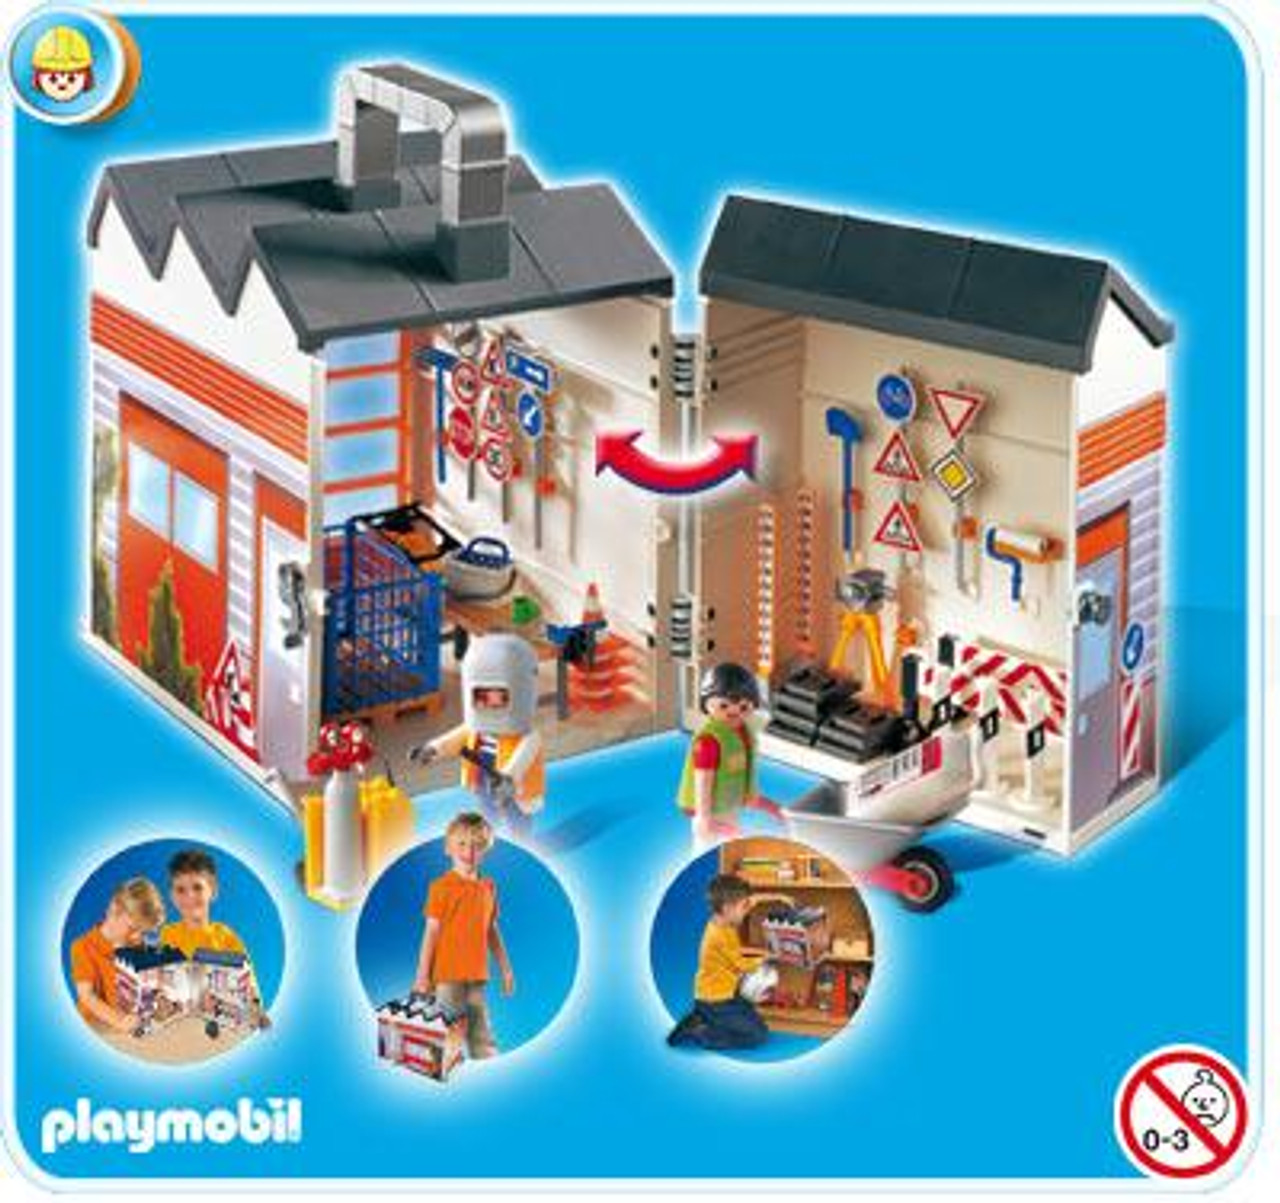 Playmobil Take Along Construction Set #4043